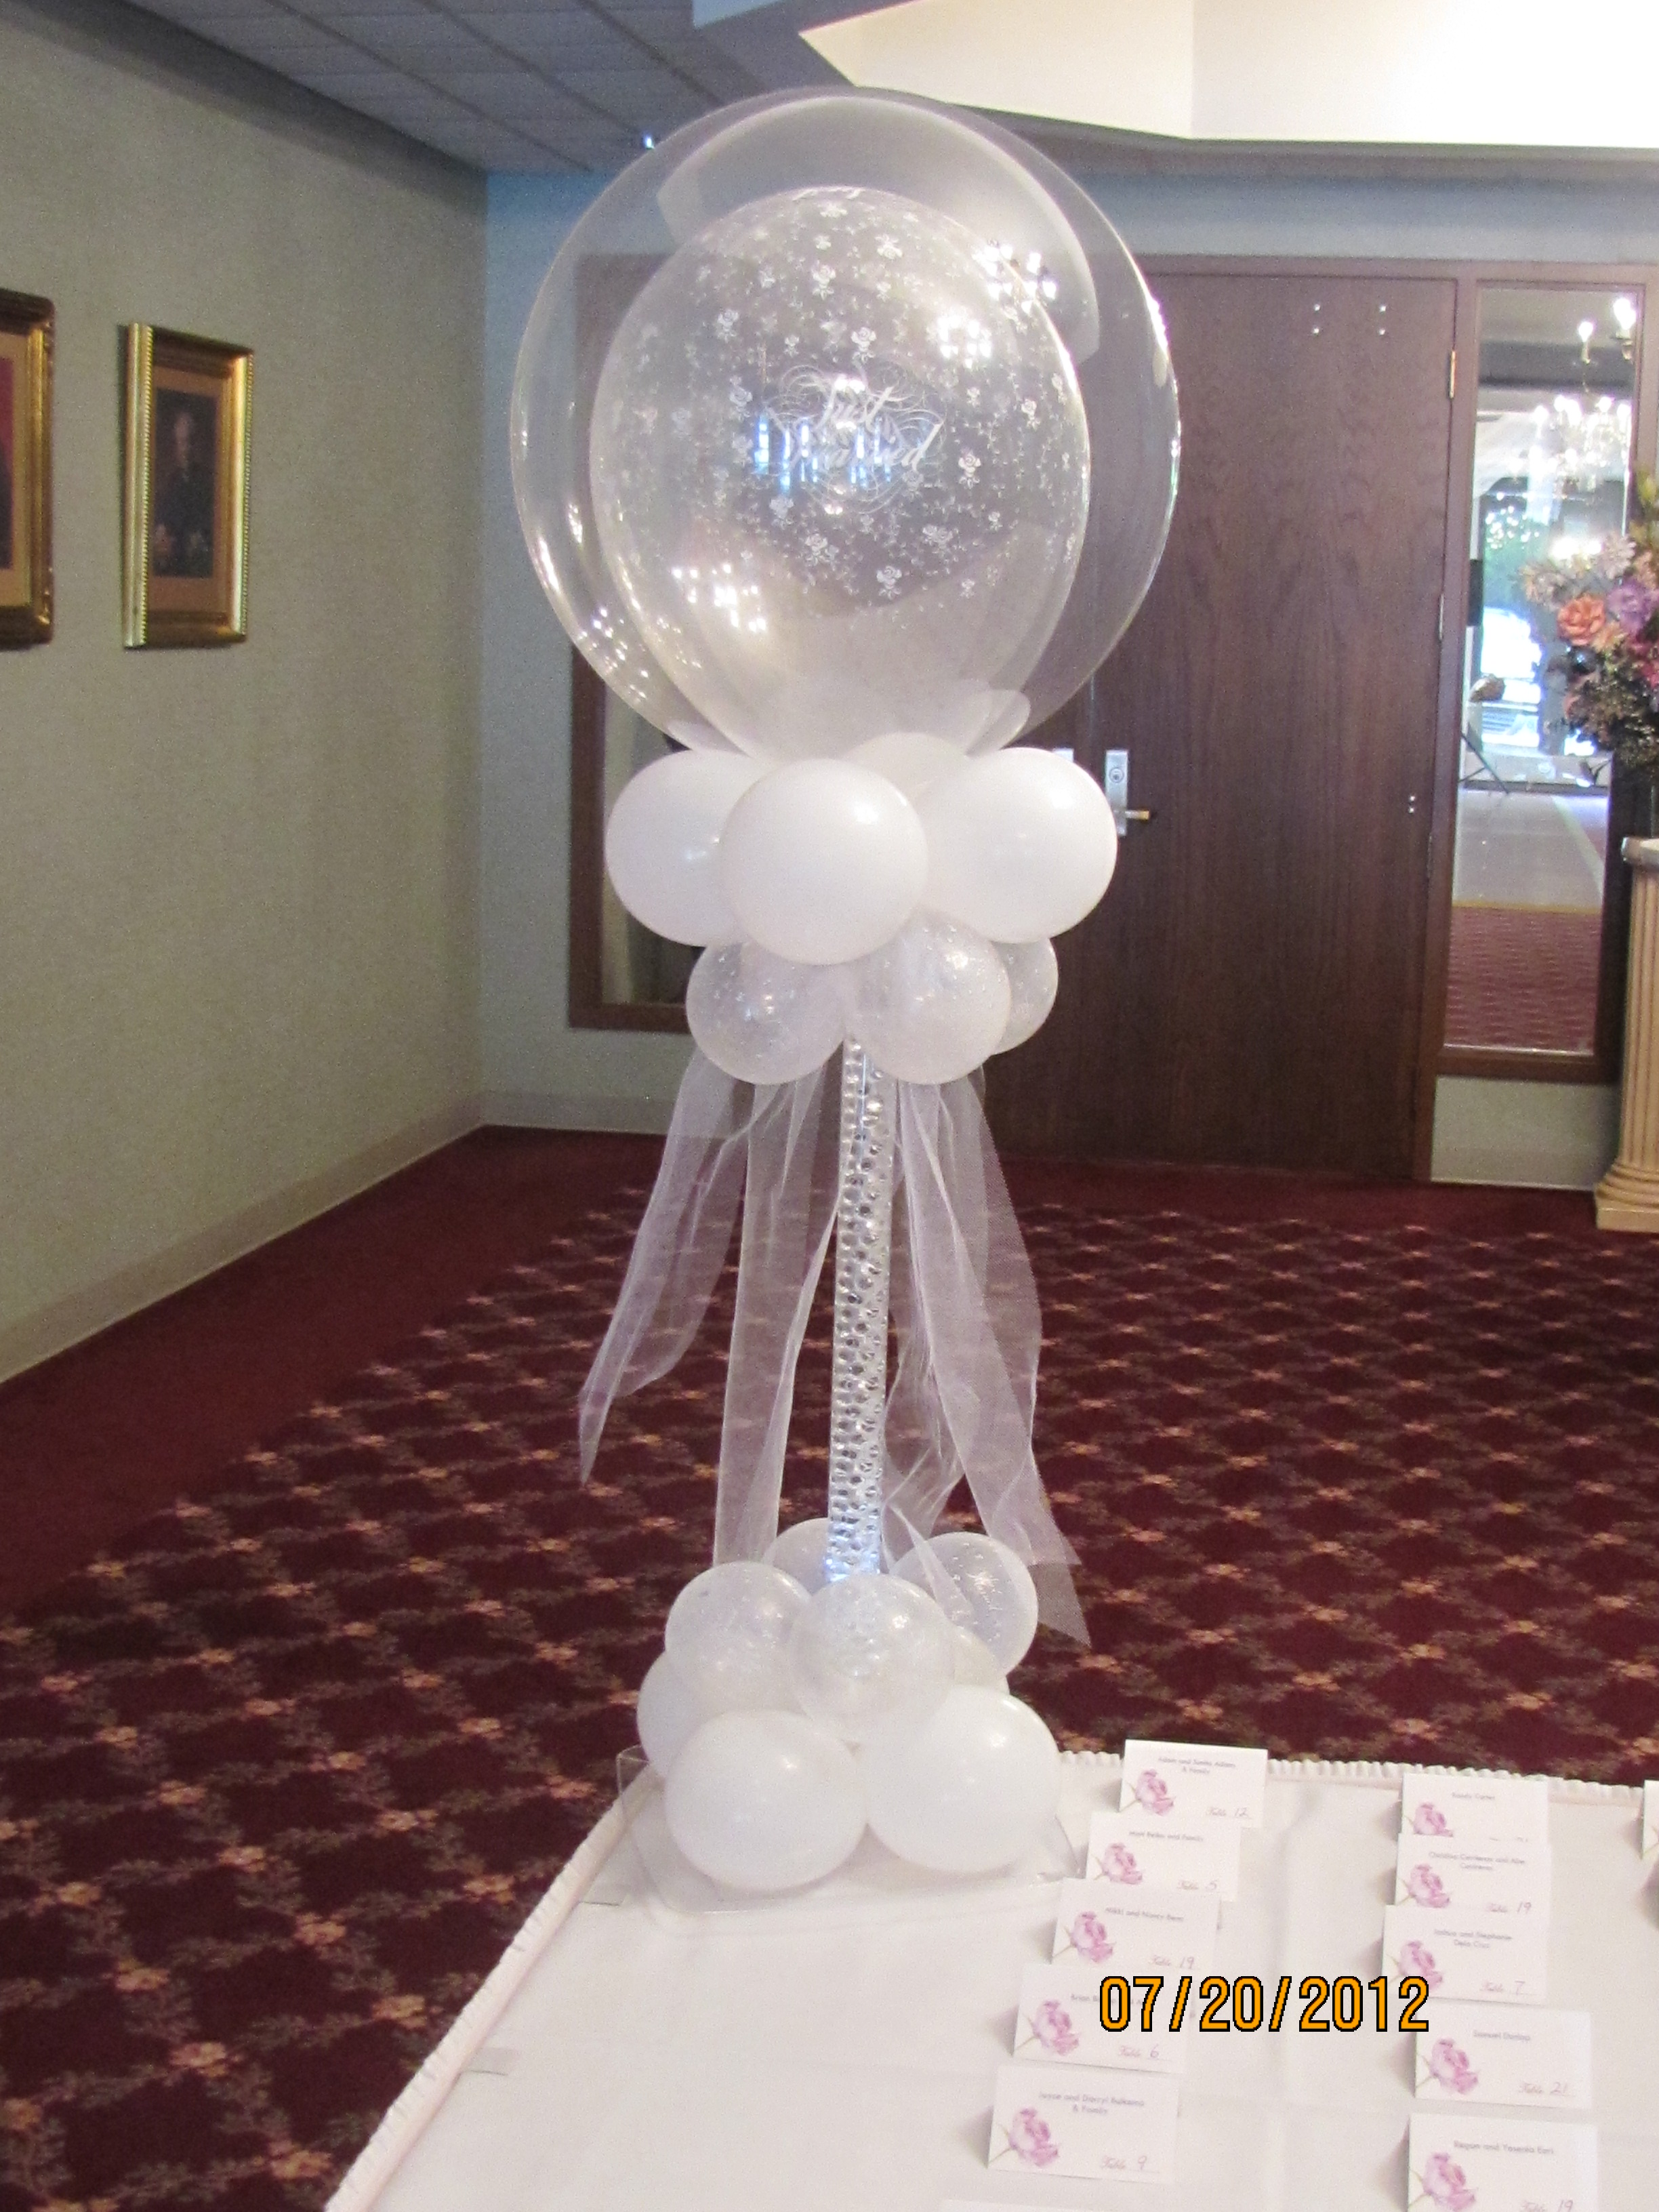 Northwest indiana balloon decorating amytheballoonlady for Balloon arch no helium